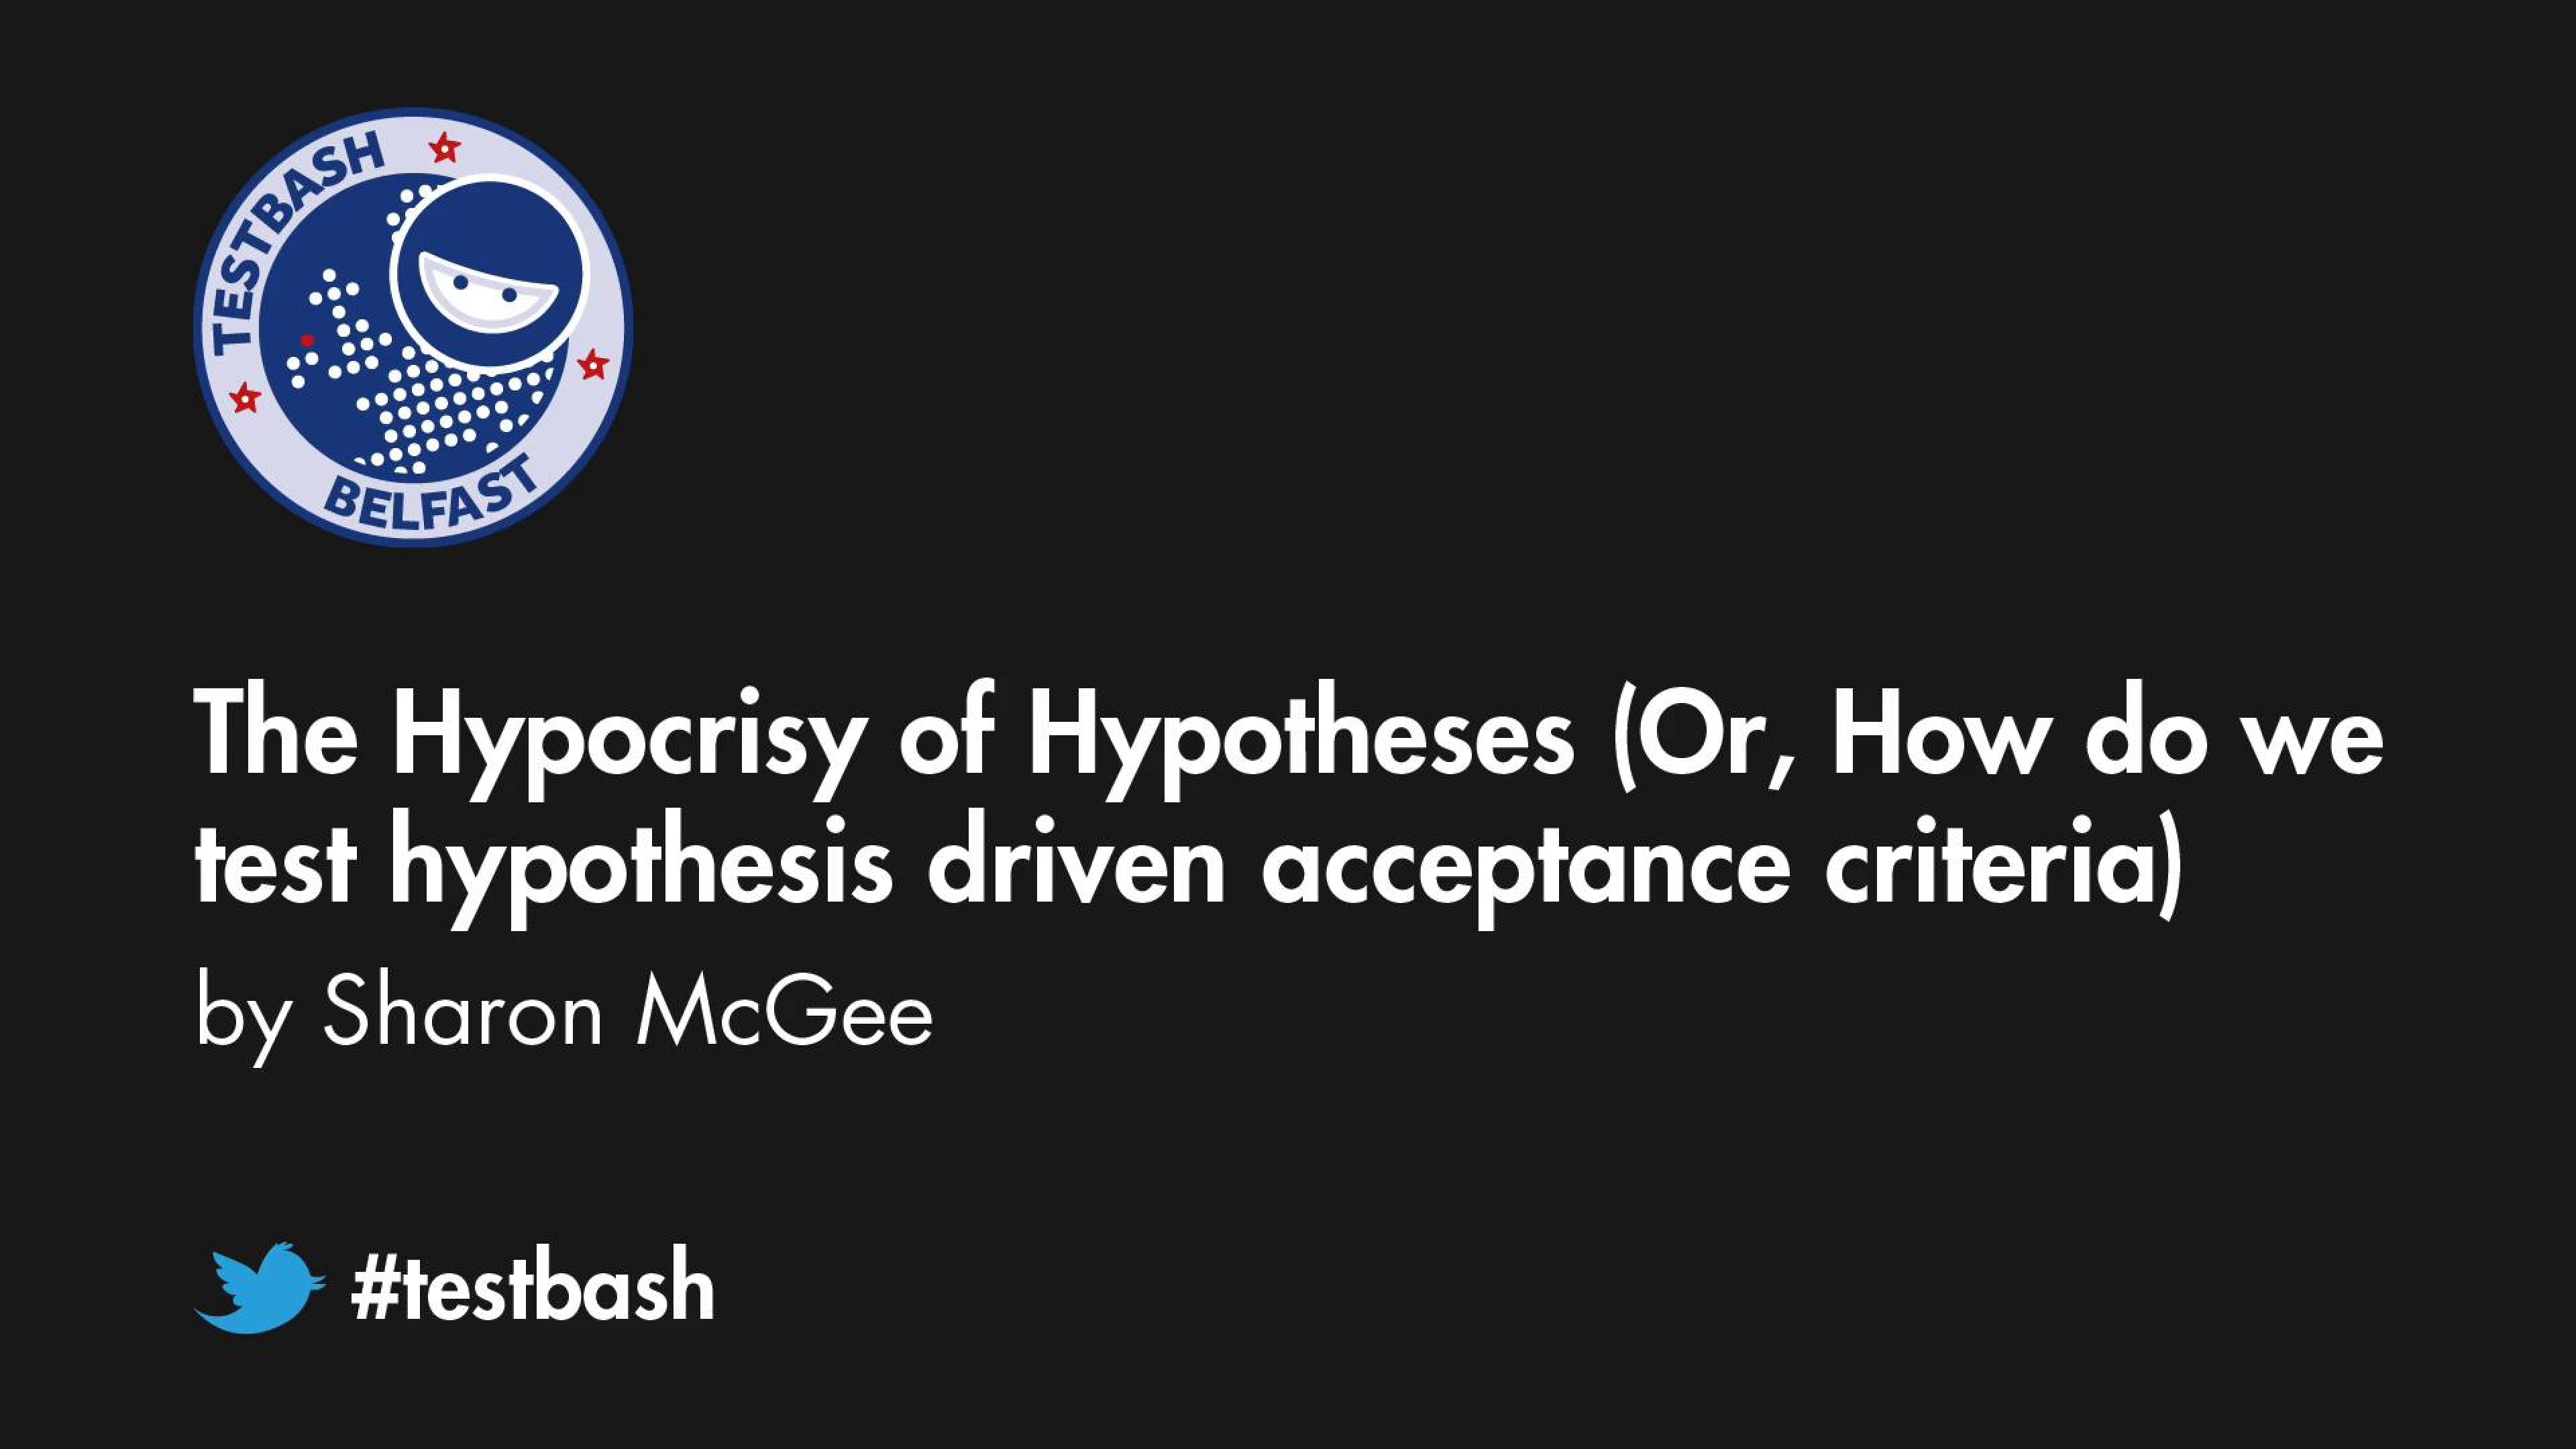 The Hypocrisy of Hypotheses (Or, How do we test hypothesis driven acceptance criteria) - Sharon McGee